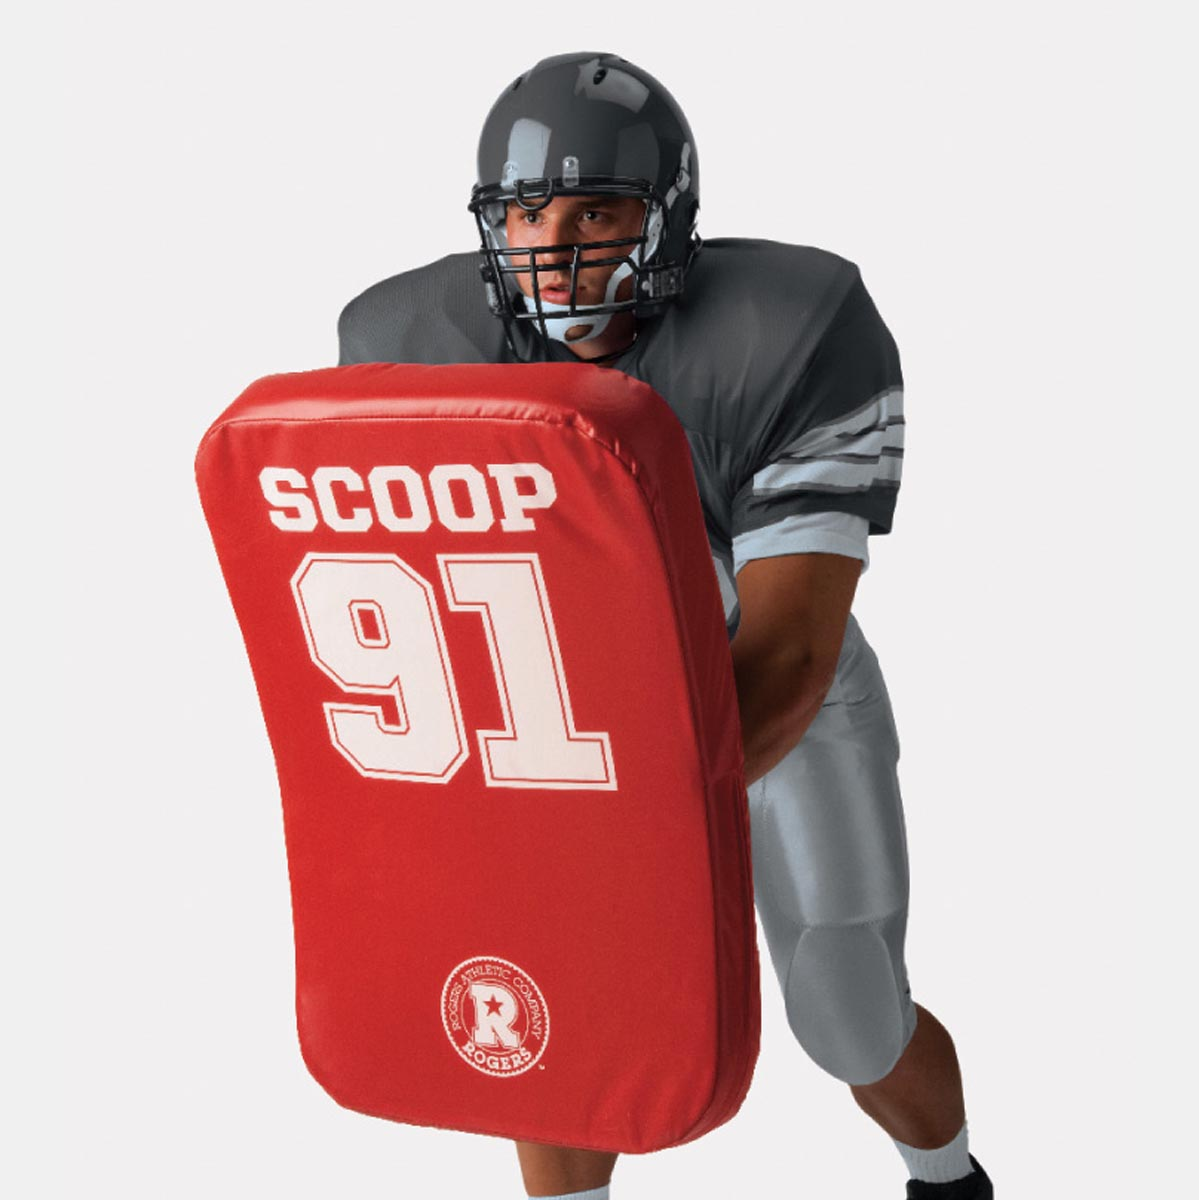 Scoop Shield